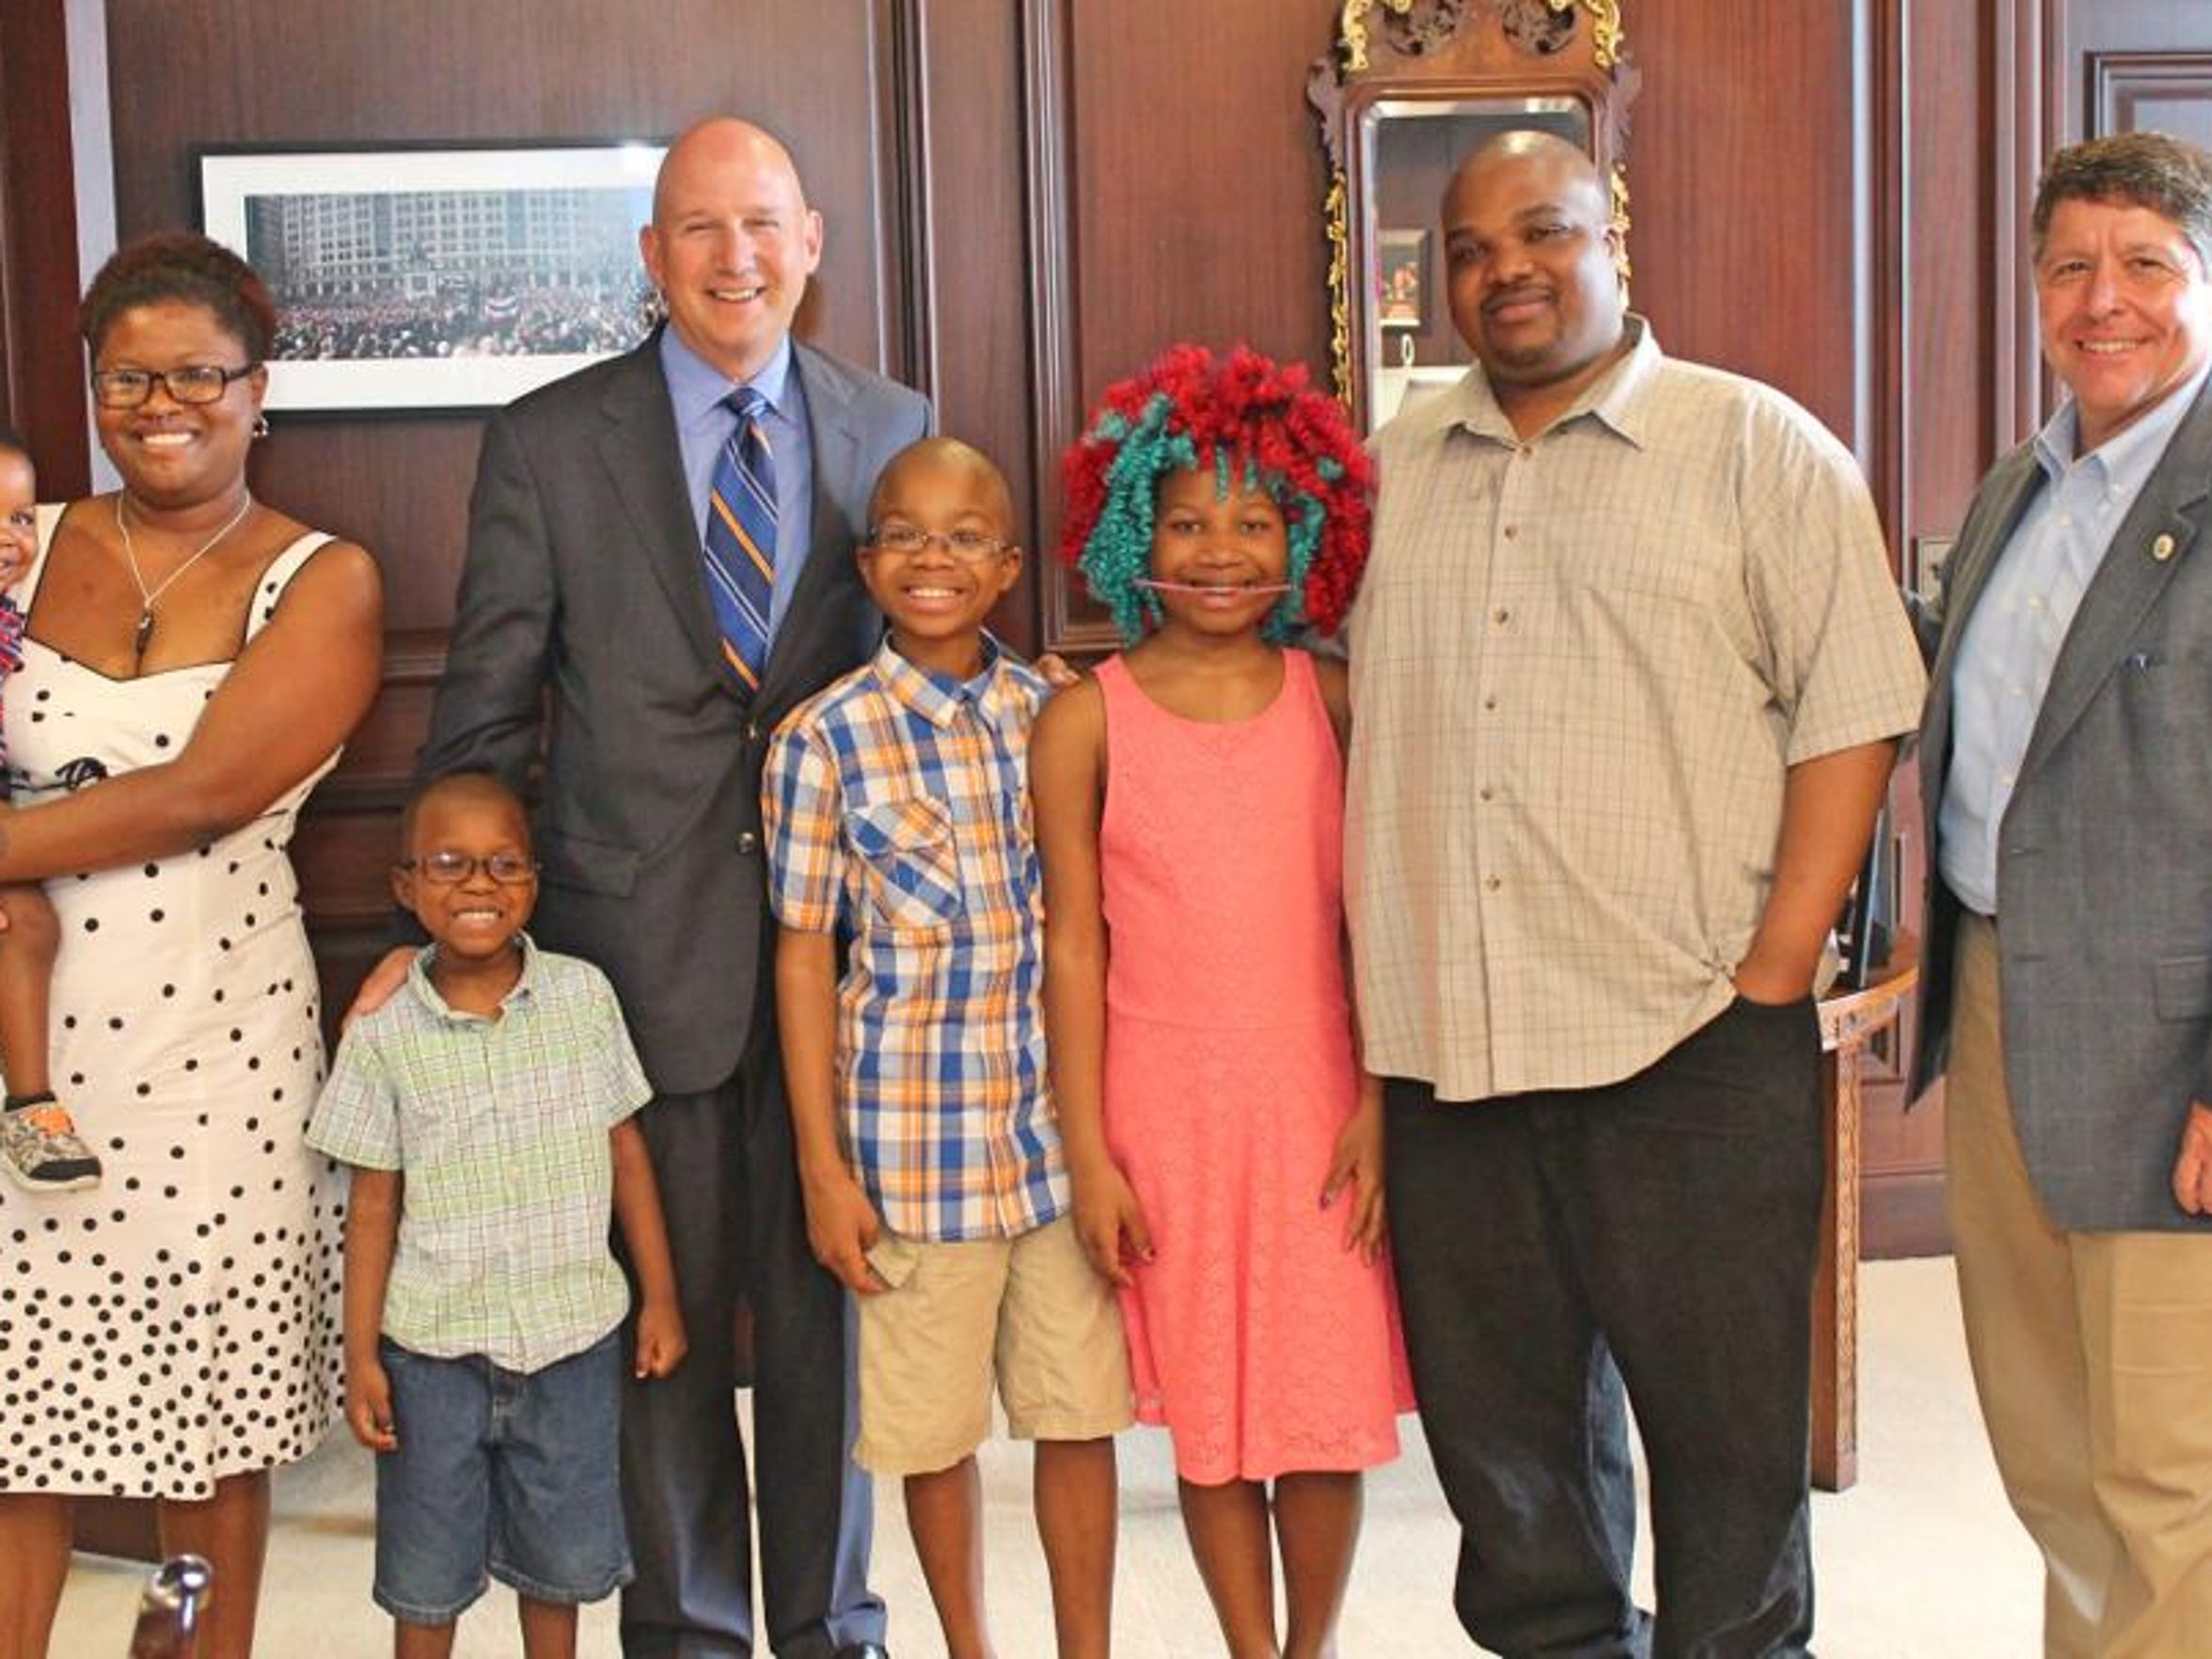 The Neals (from left to right) Thane, DeShanna, Hyperion, Lu, Trinity and Chris pose with former Governor Jack Markell and State Rep. Paul Baumbach in 2016.